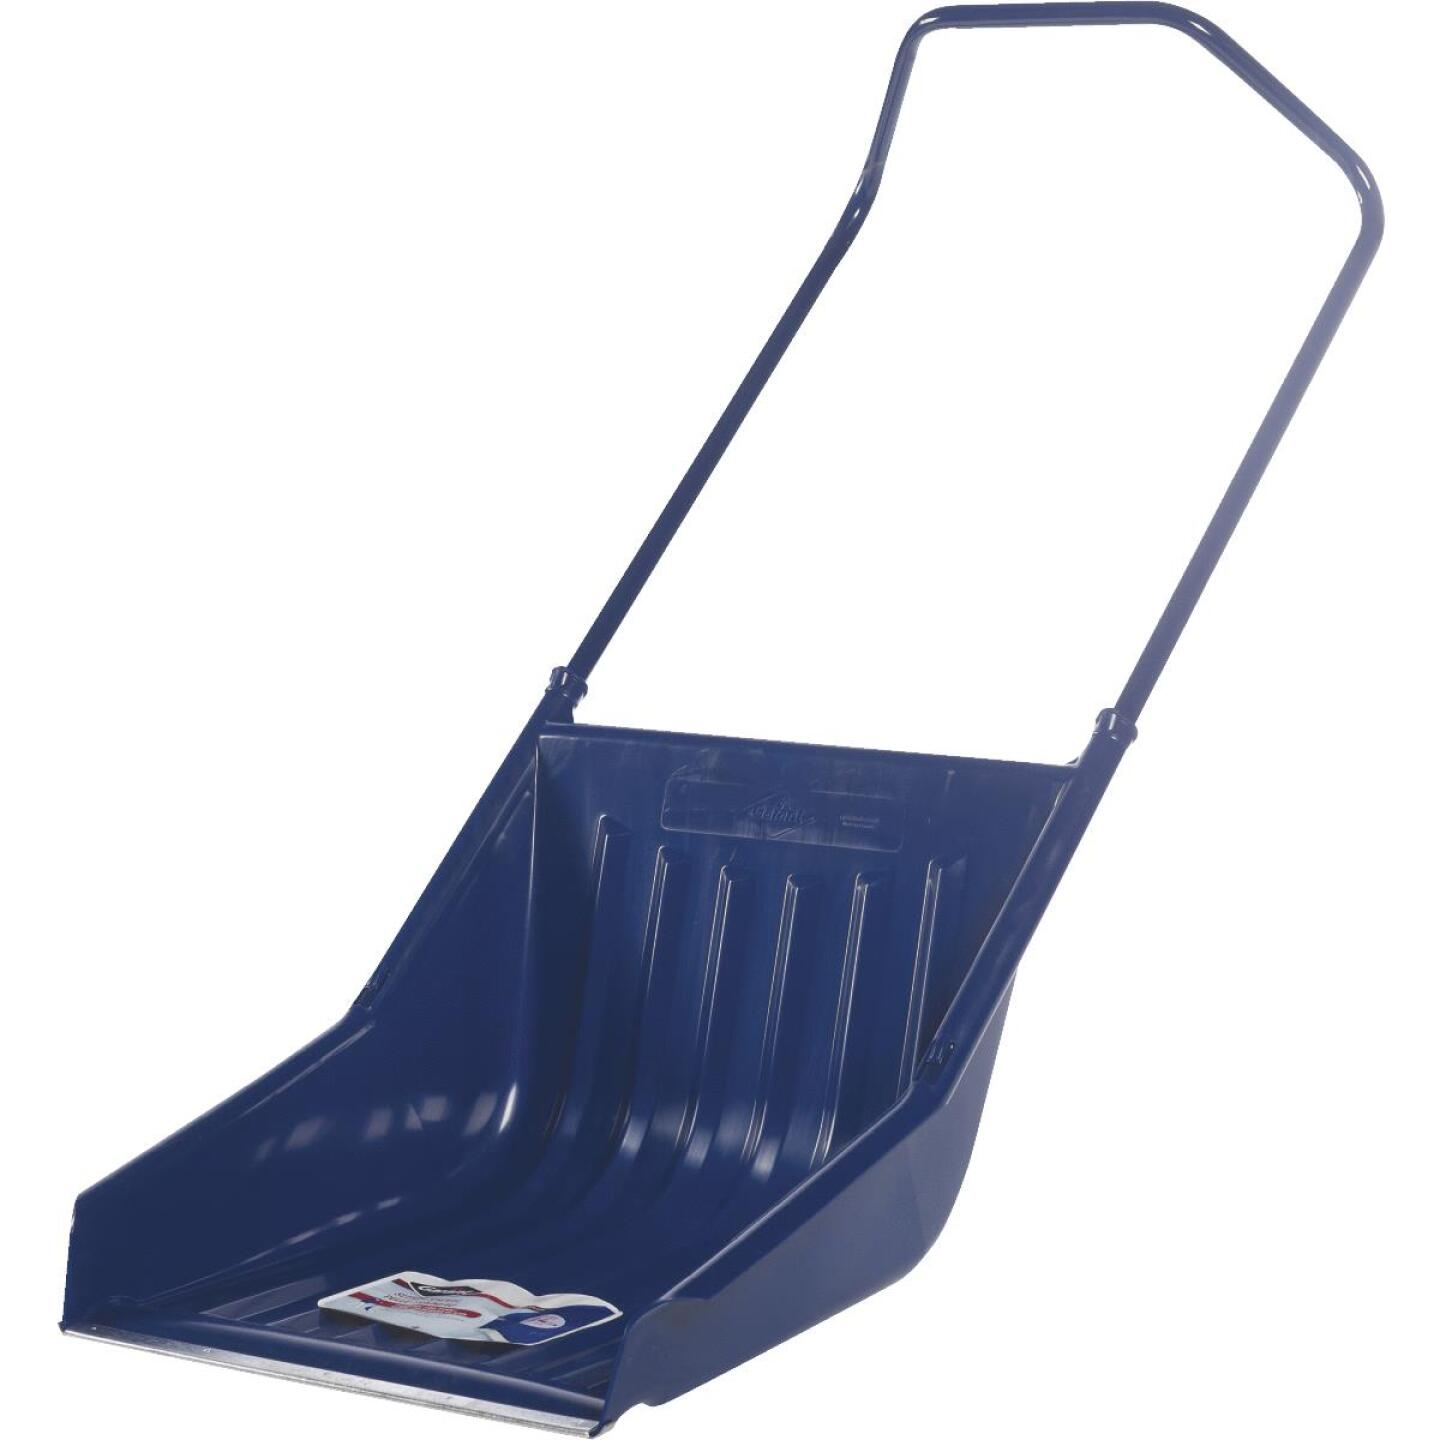 Garant 23.5 In. Poly Sled Snow Shovel with 42.5 In. Steel Handle Image 1